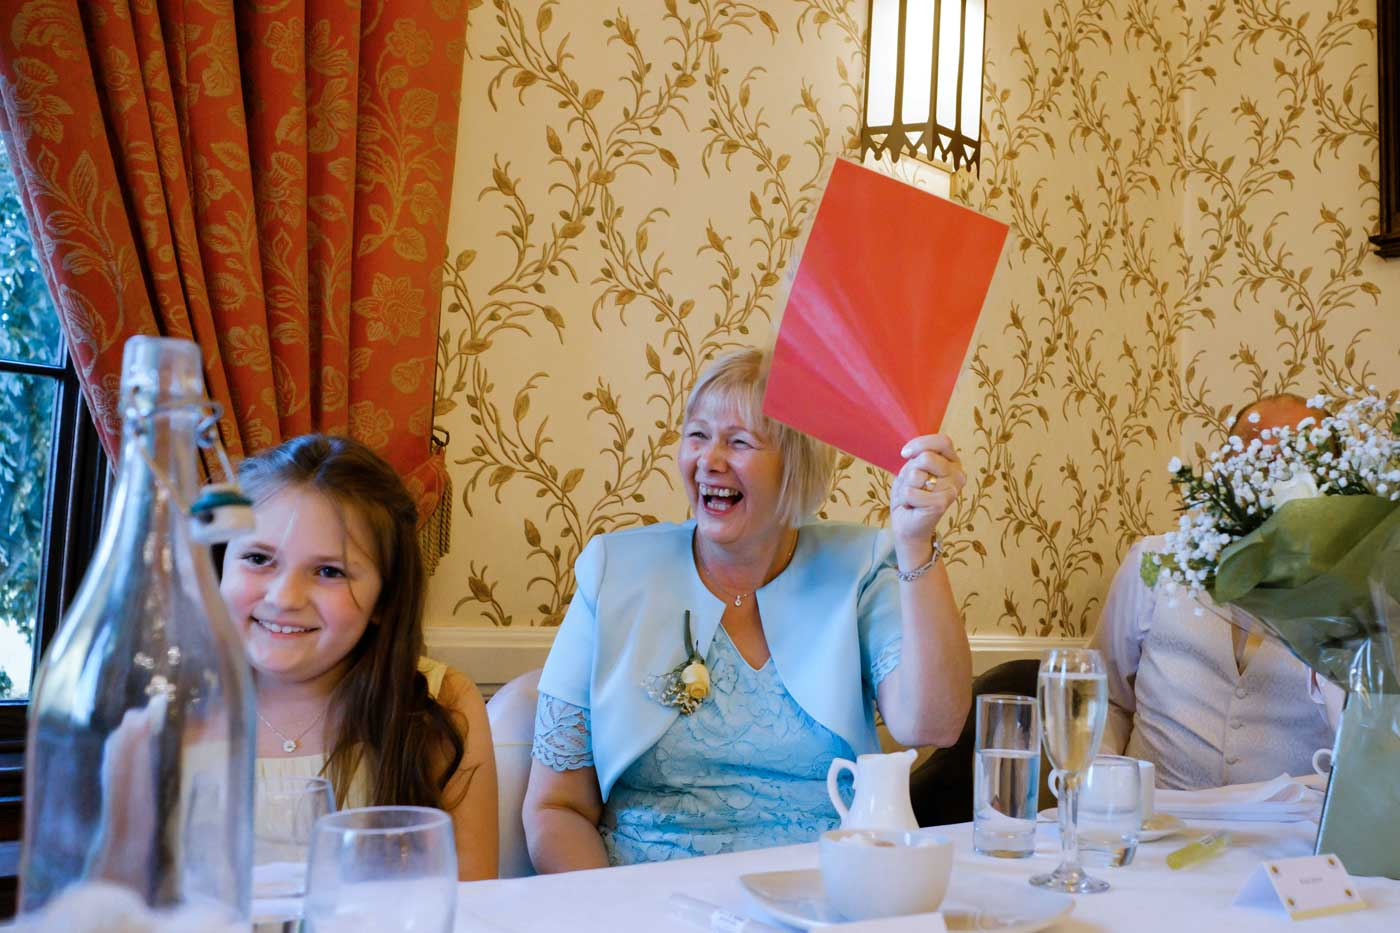 Mother of groom giving redcard to best man's risque speech